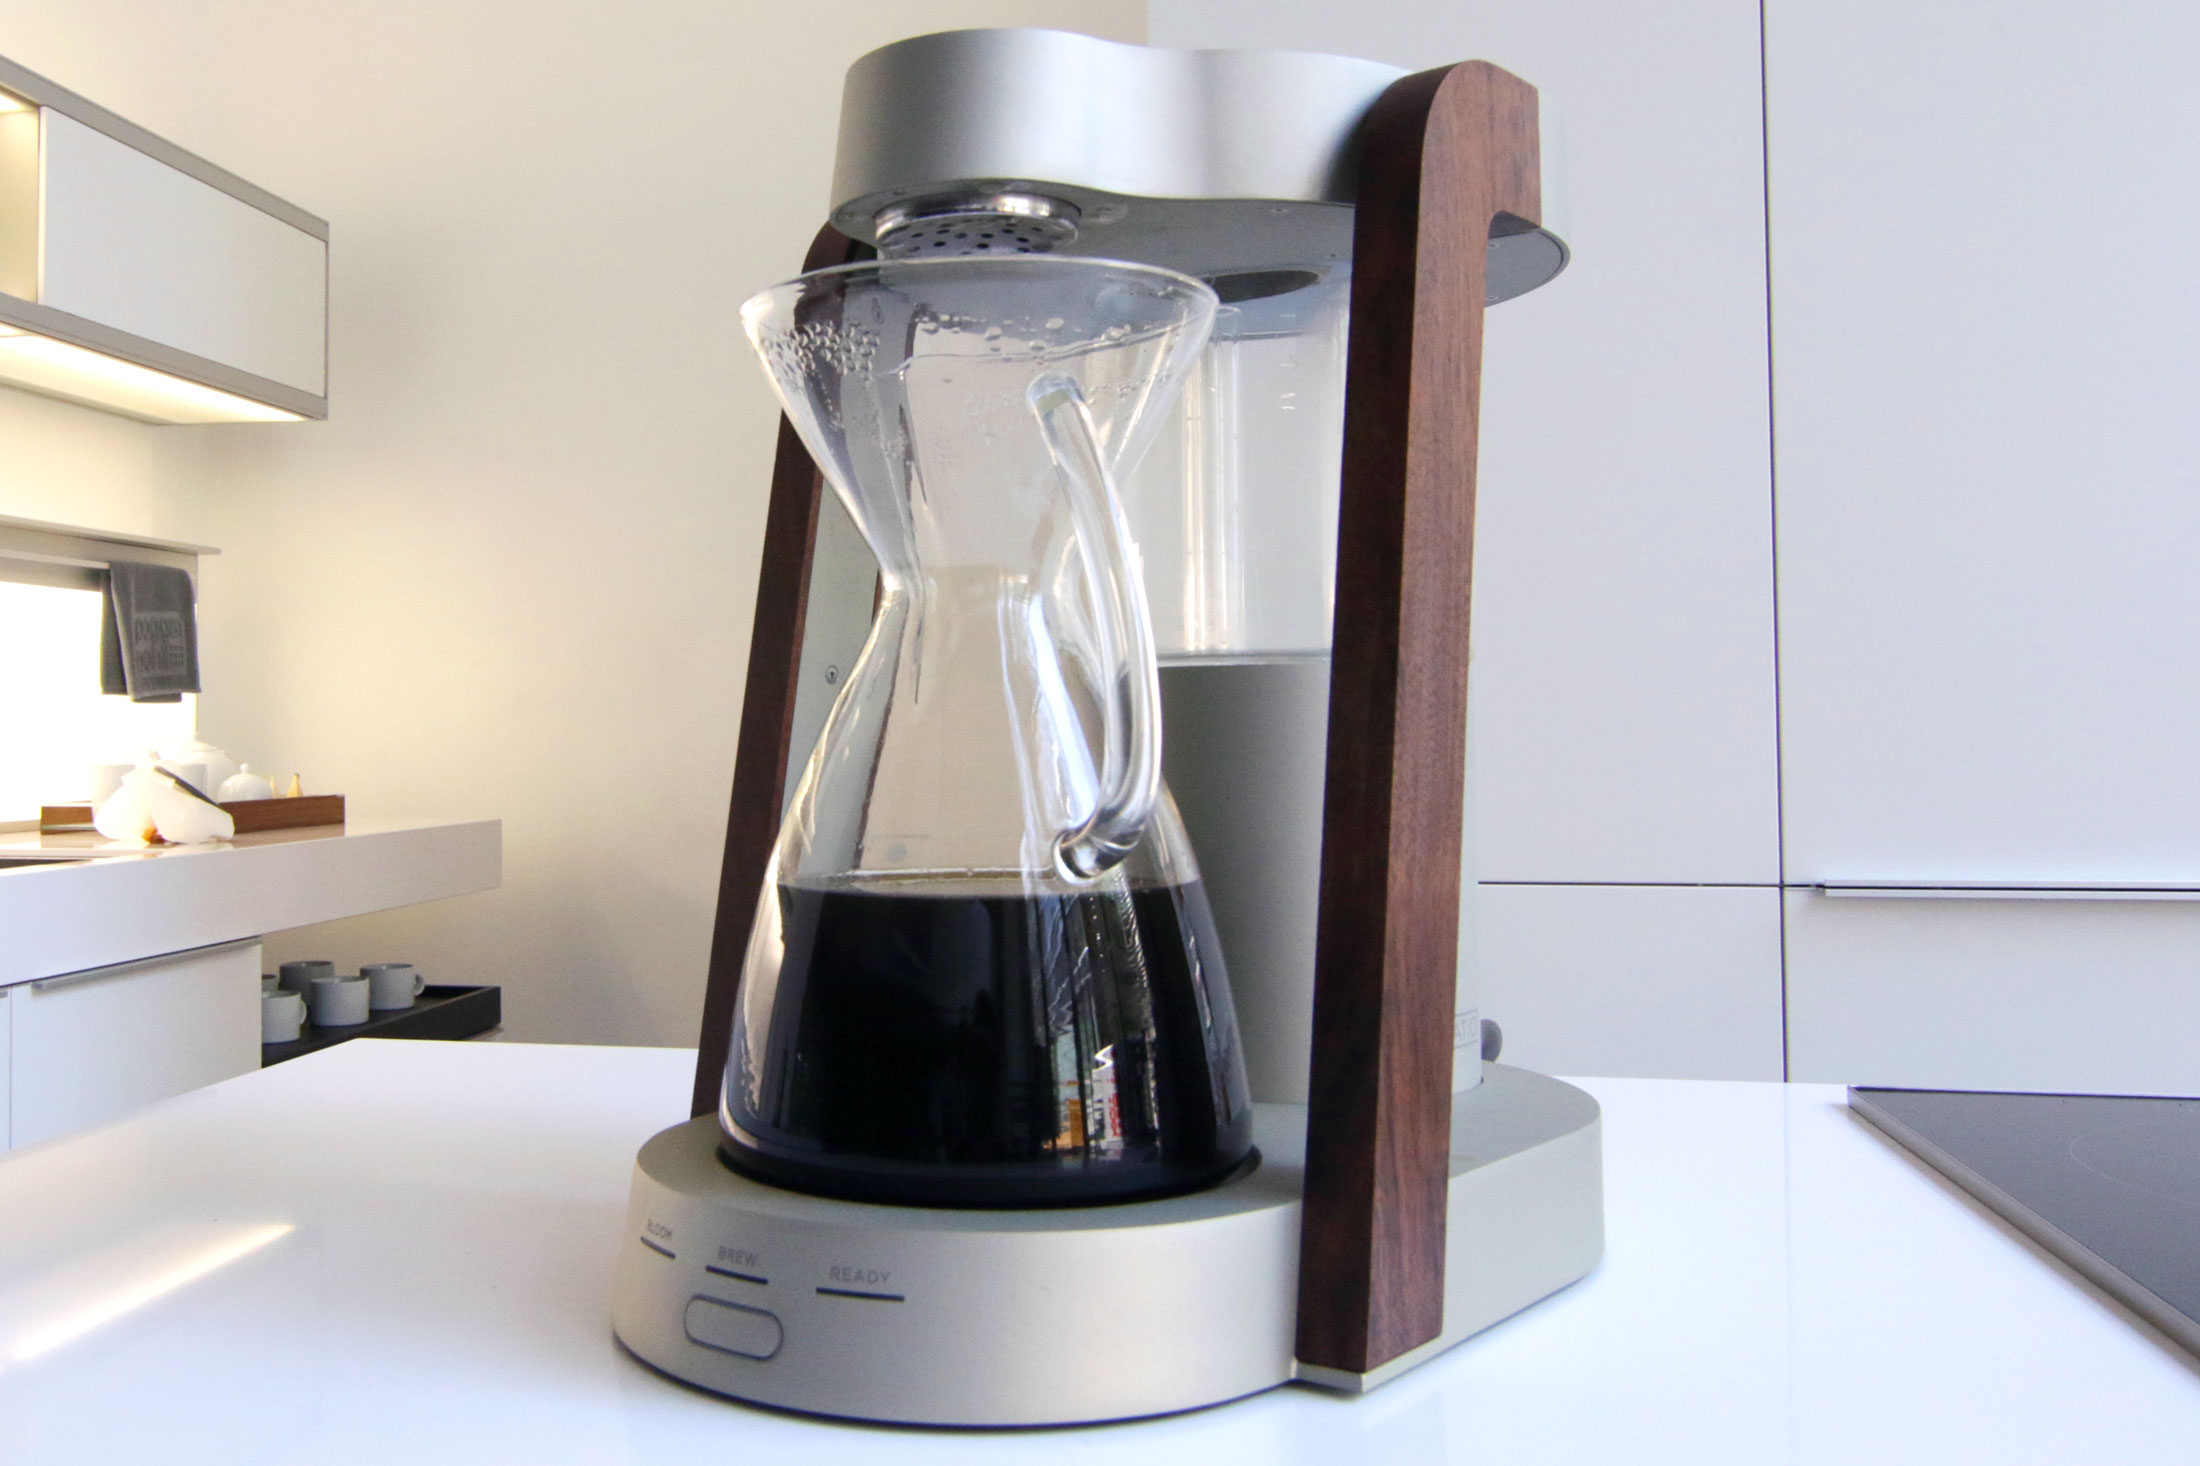 Review: Is a Gorgeous Pour-Over Coffee Maker Worth $500?